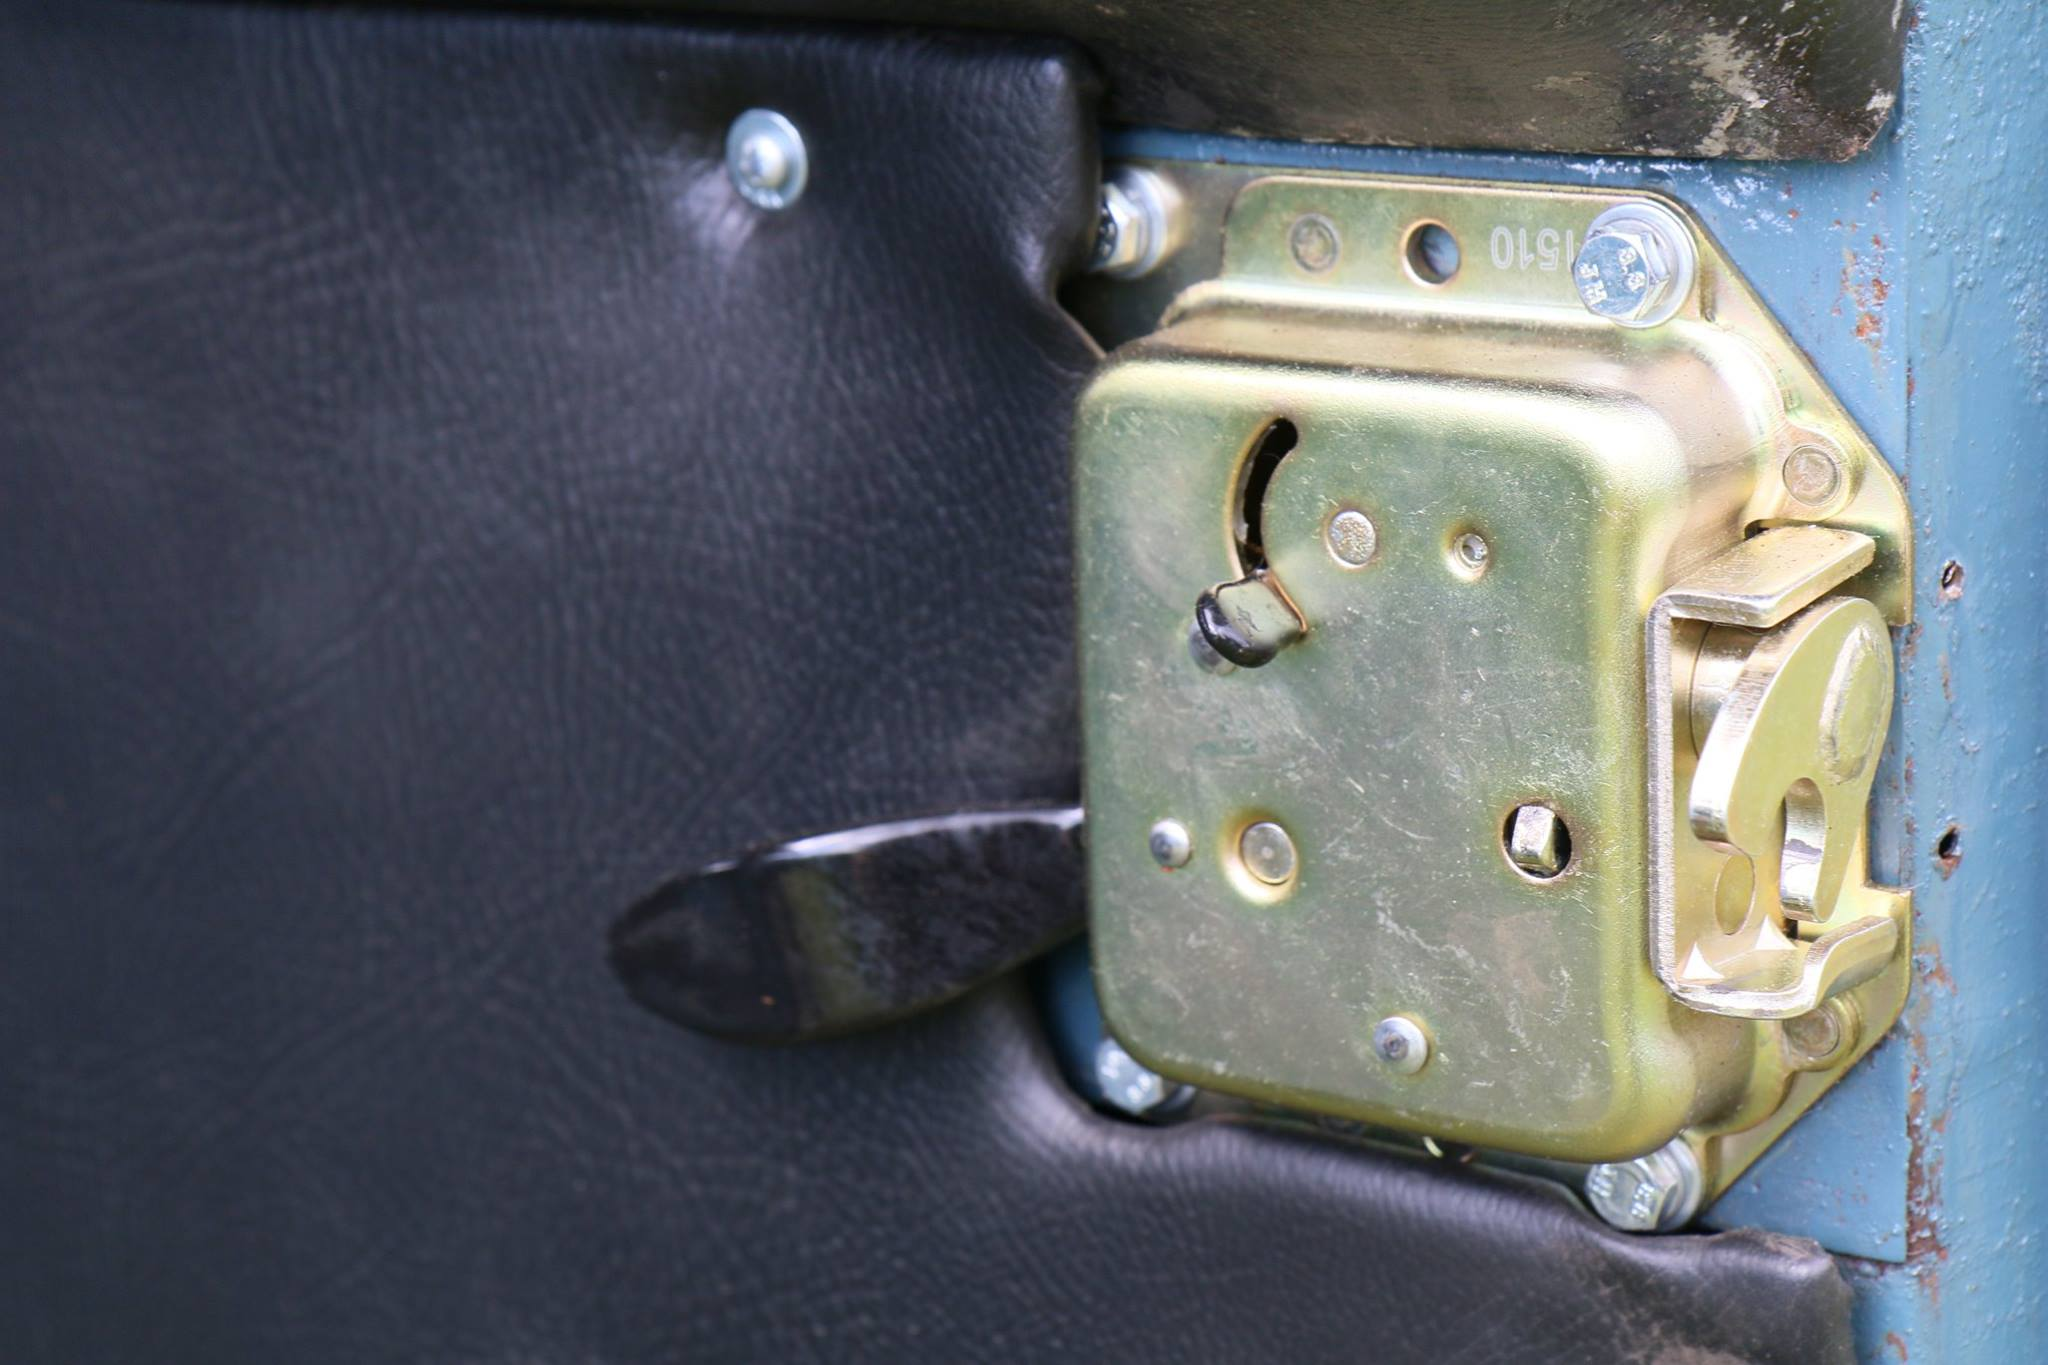 Series III door latches are installed.